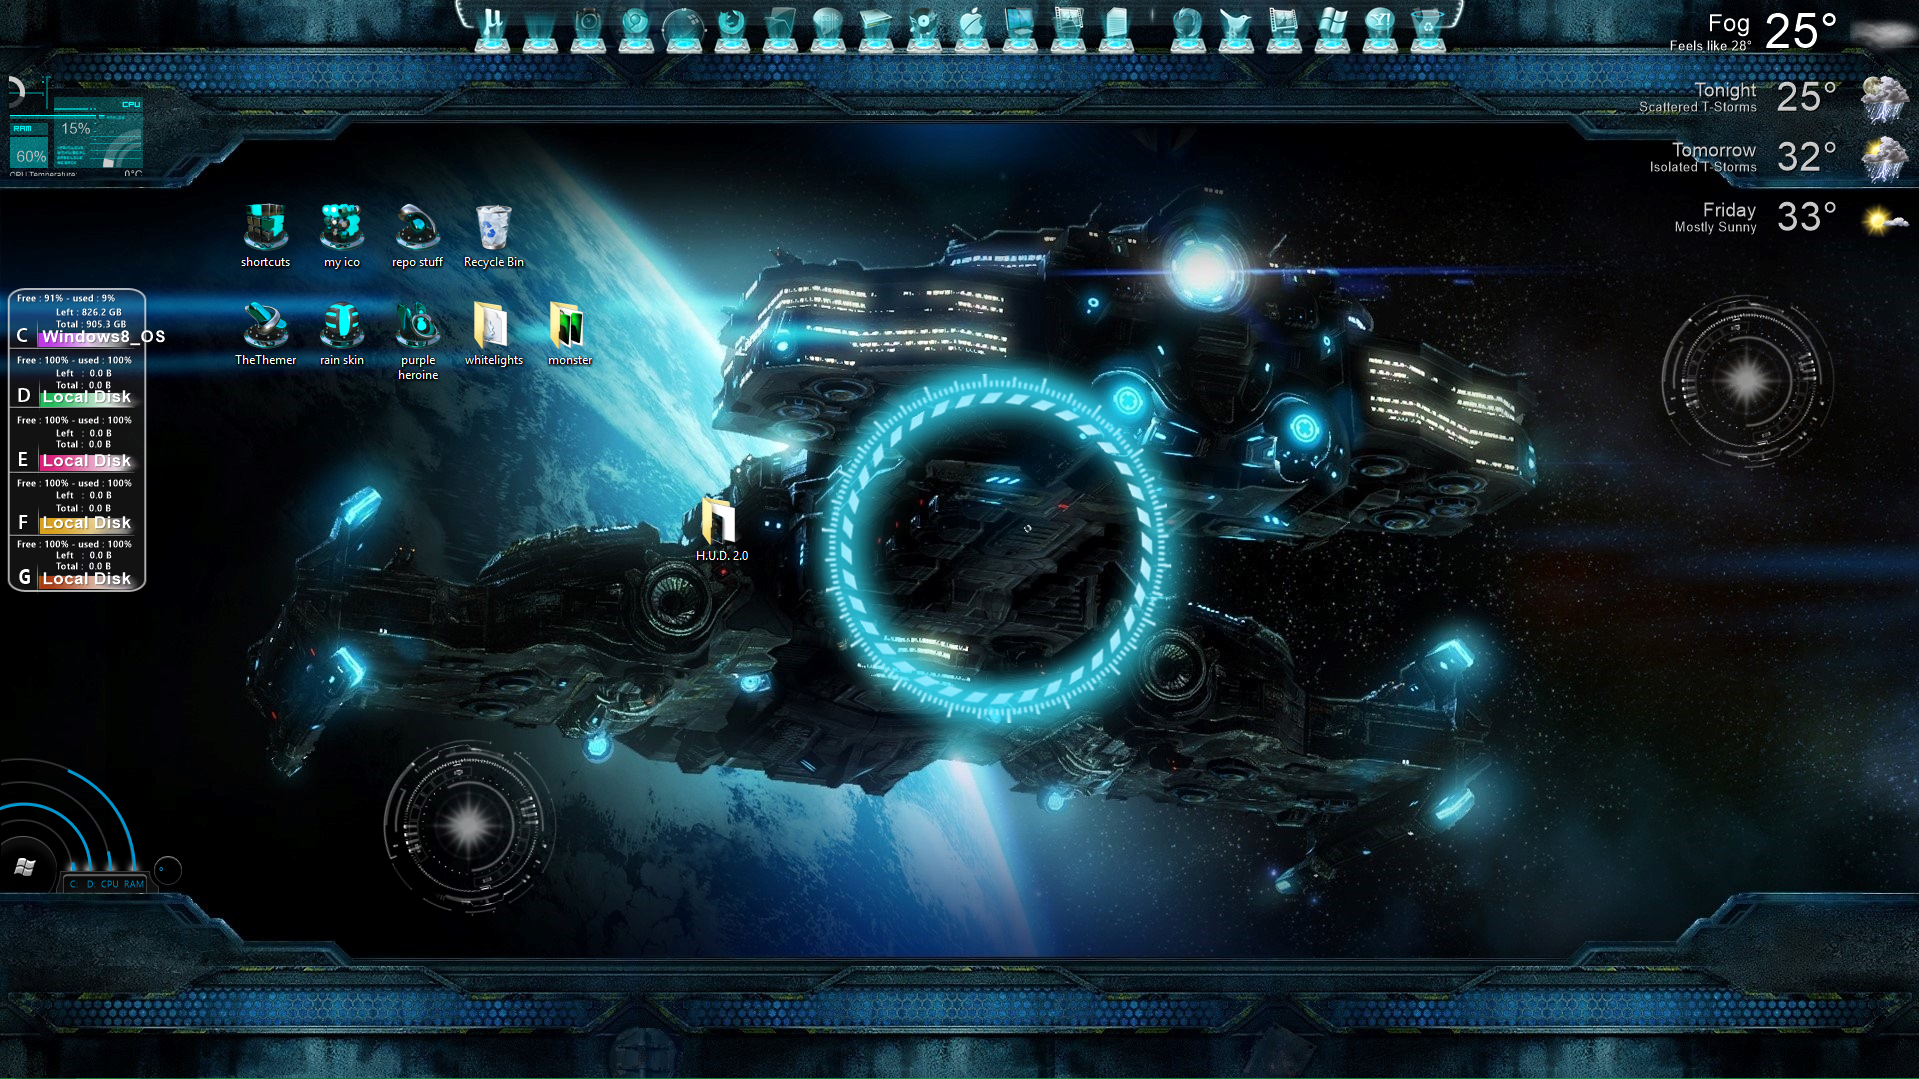 Windows 8 background image disappears -  H U D 2 0 Full Theme Pack For Windows 8 By Thethemer